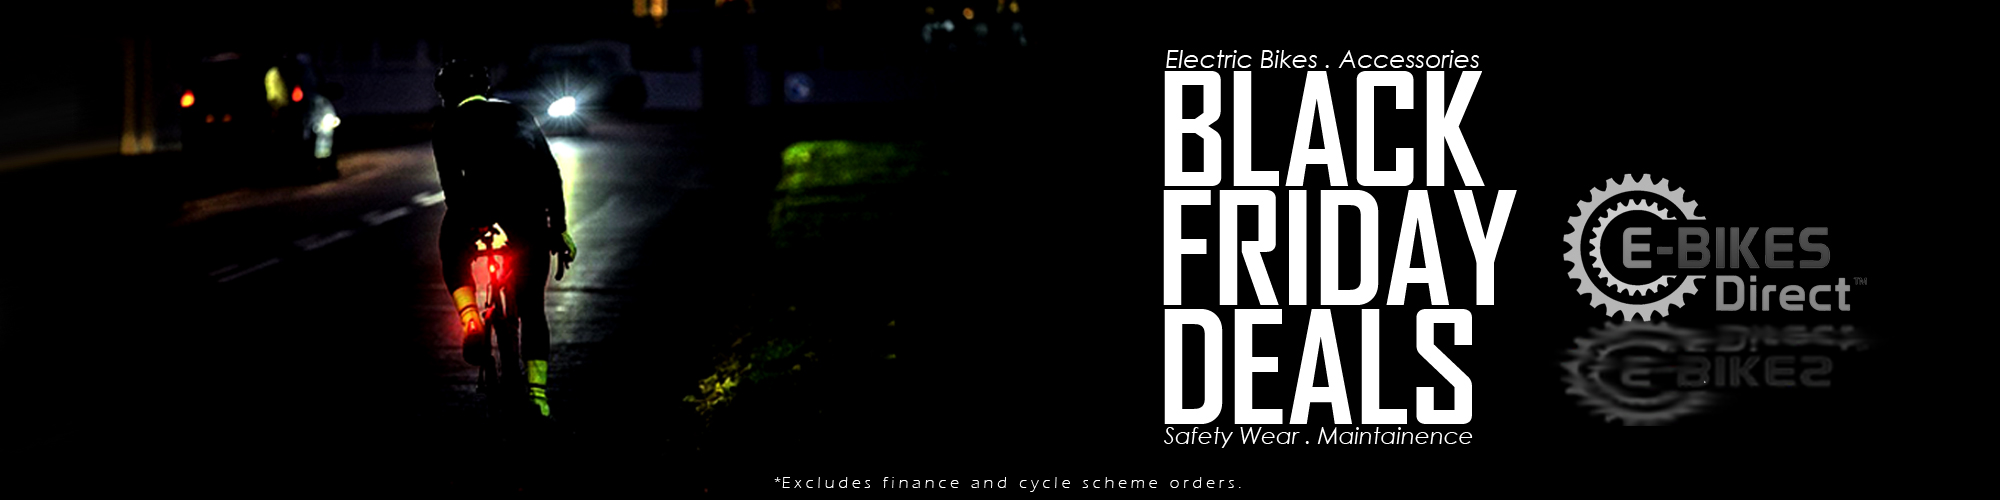 Black Friday Electric Bike Deals at E-Bikes Direct